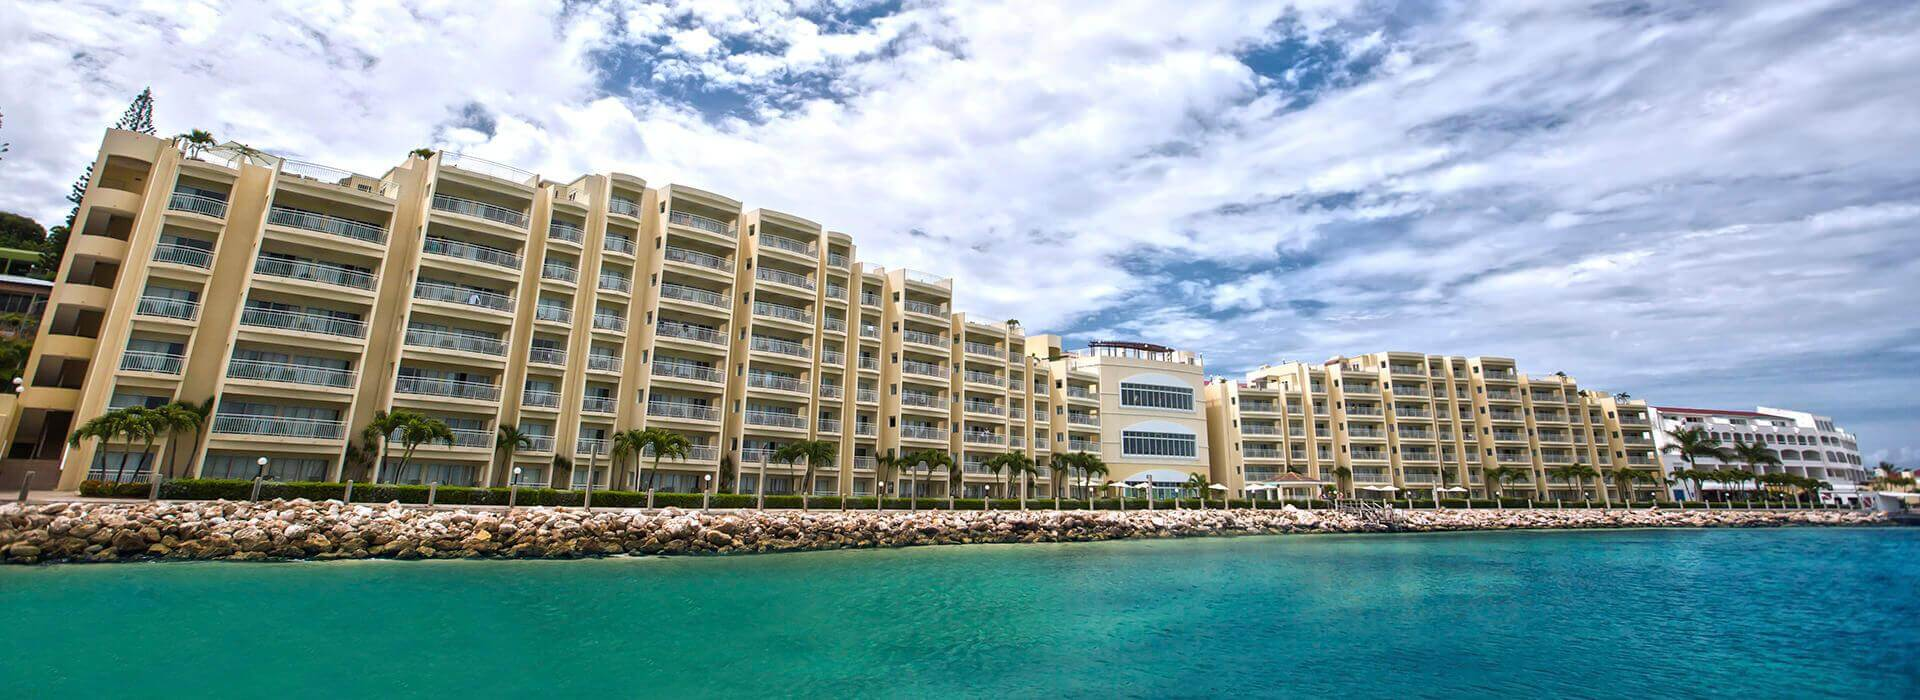 The villas at simpson bay resort & marina in st maarten